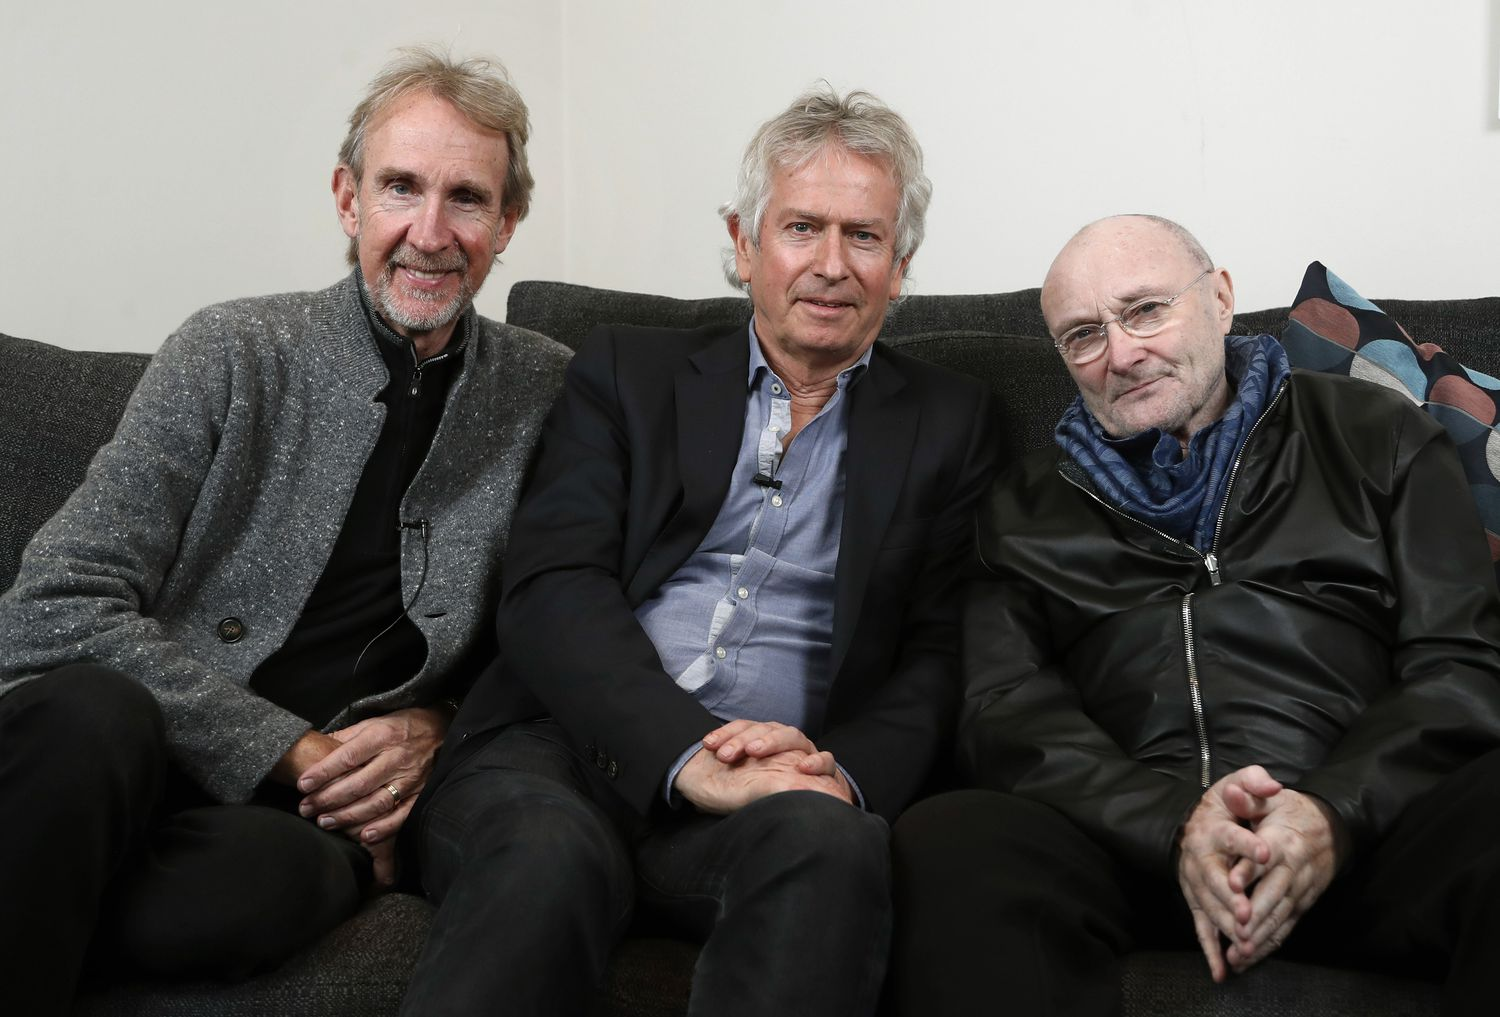 Mike Rutherford, Tony Bank y Phil Collins de Genesis.